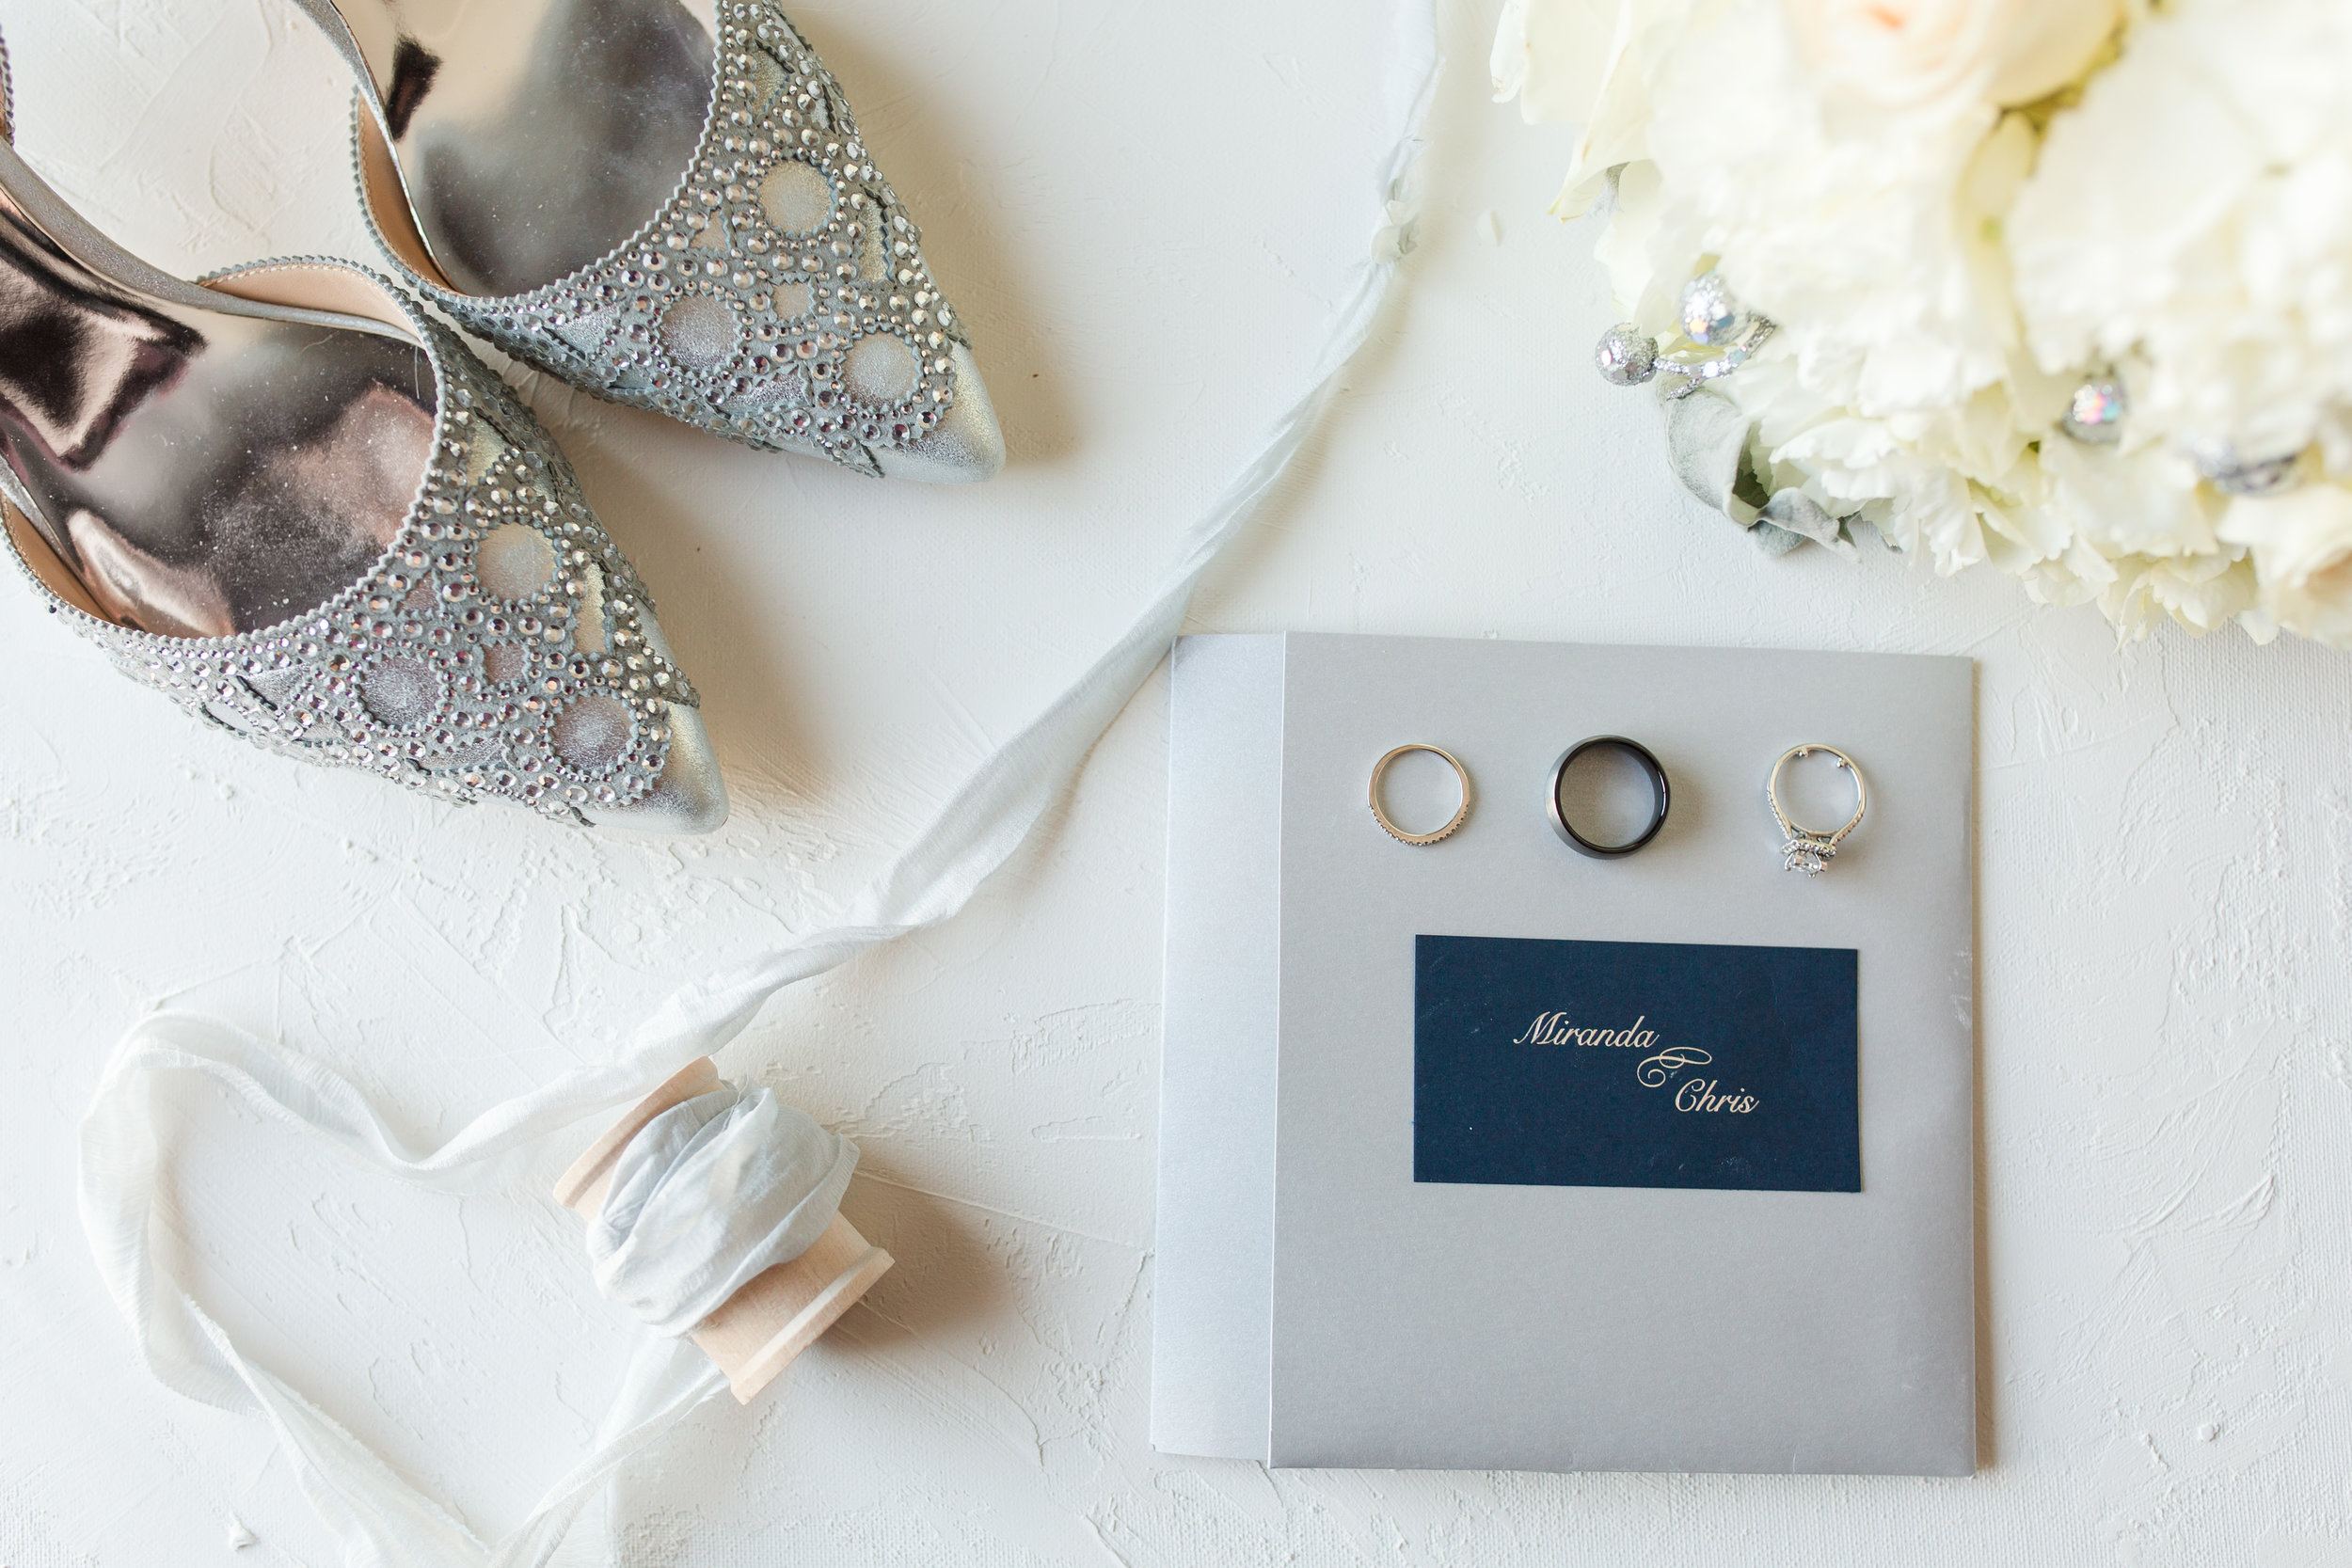 Mr. & Mrs. Williams | New Years Eve Wedding — Sara Campbell Photography